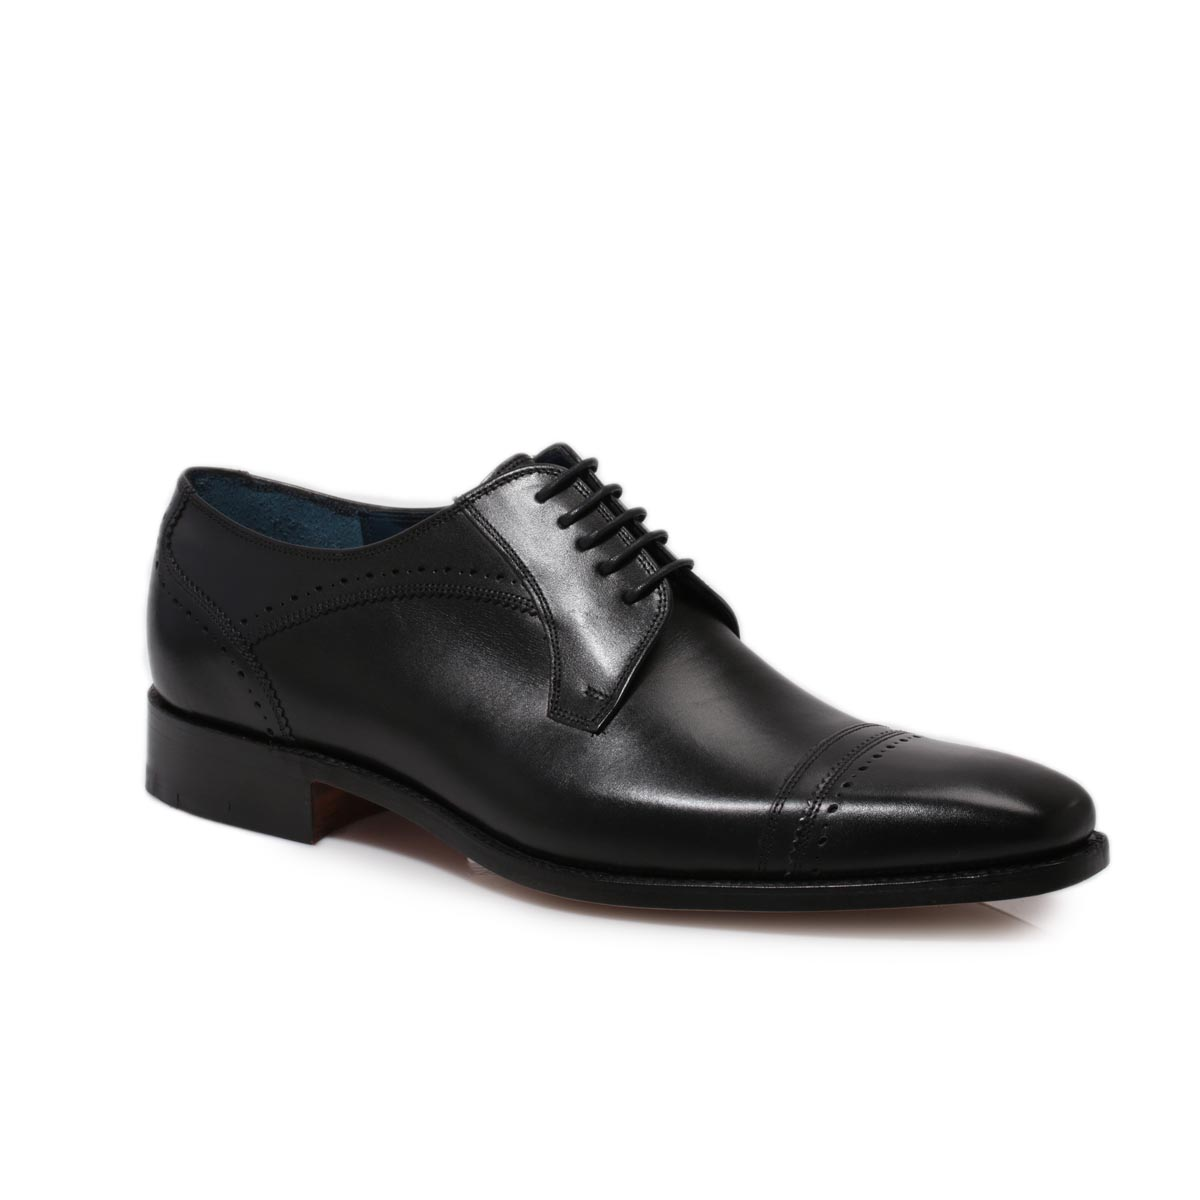 Men's Leather Formal Shoes 8 Black